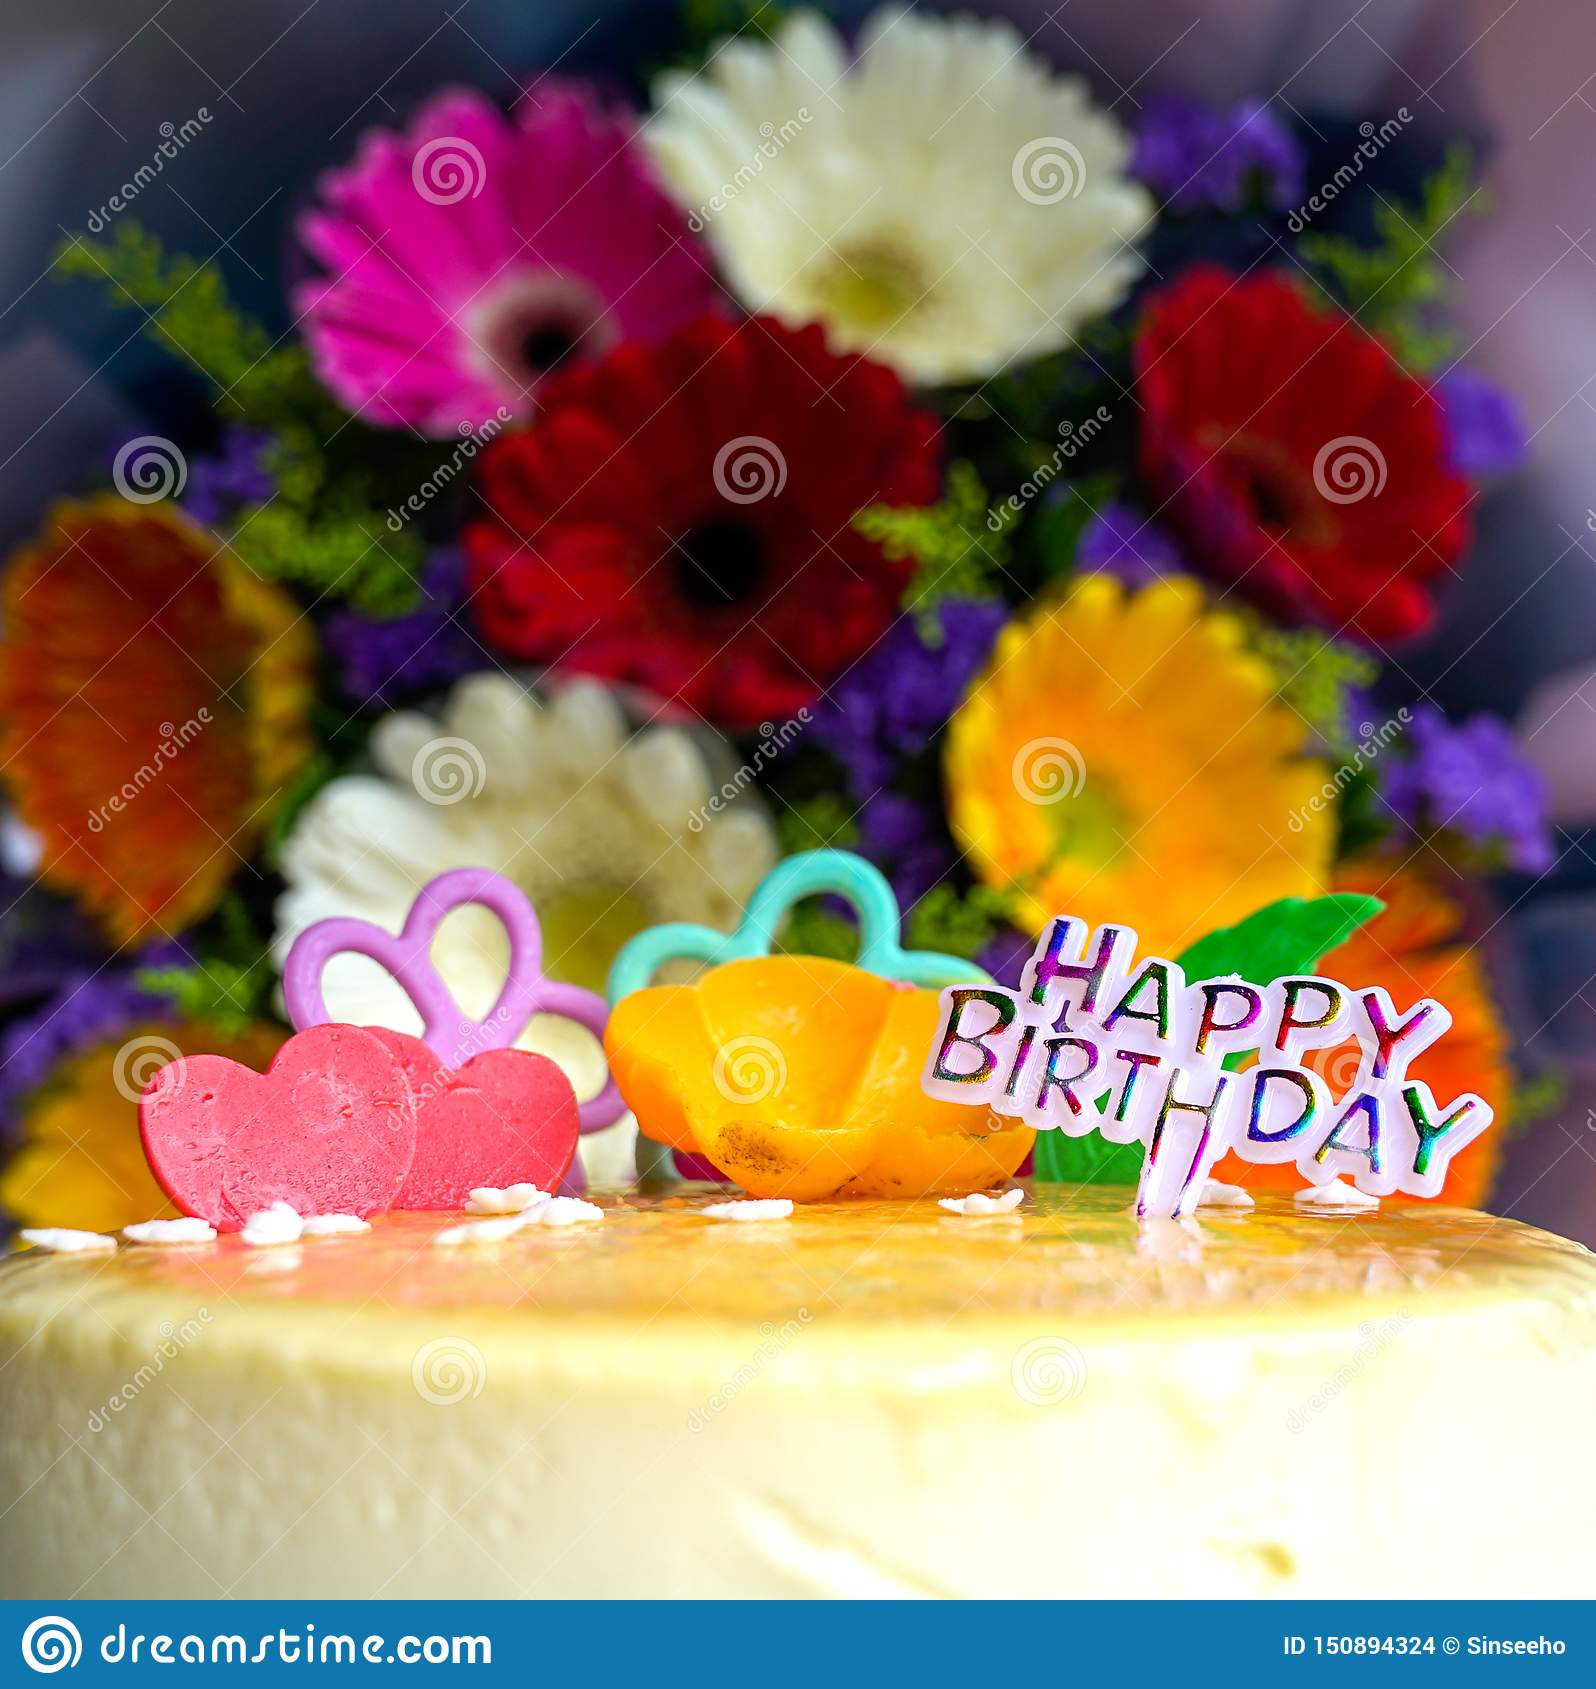 Magnificent Bouquet Of Gerbera Daisy Flowers And Cheese Cake Stock Photo Funny Birthday Cards Online Alyptdamsfinfo